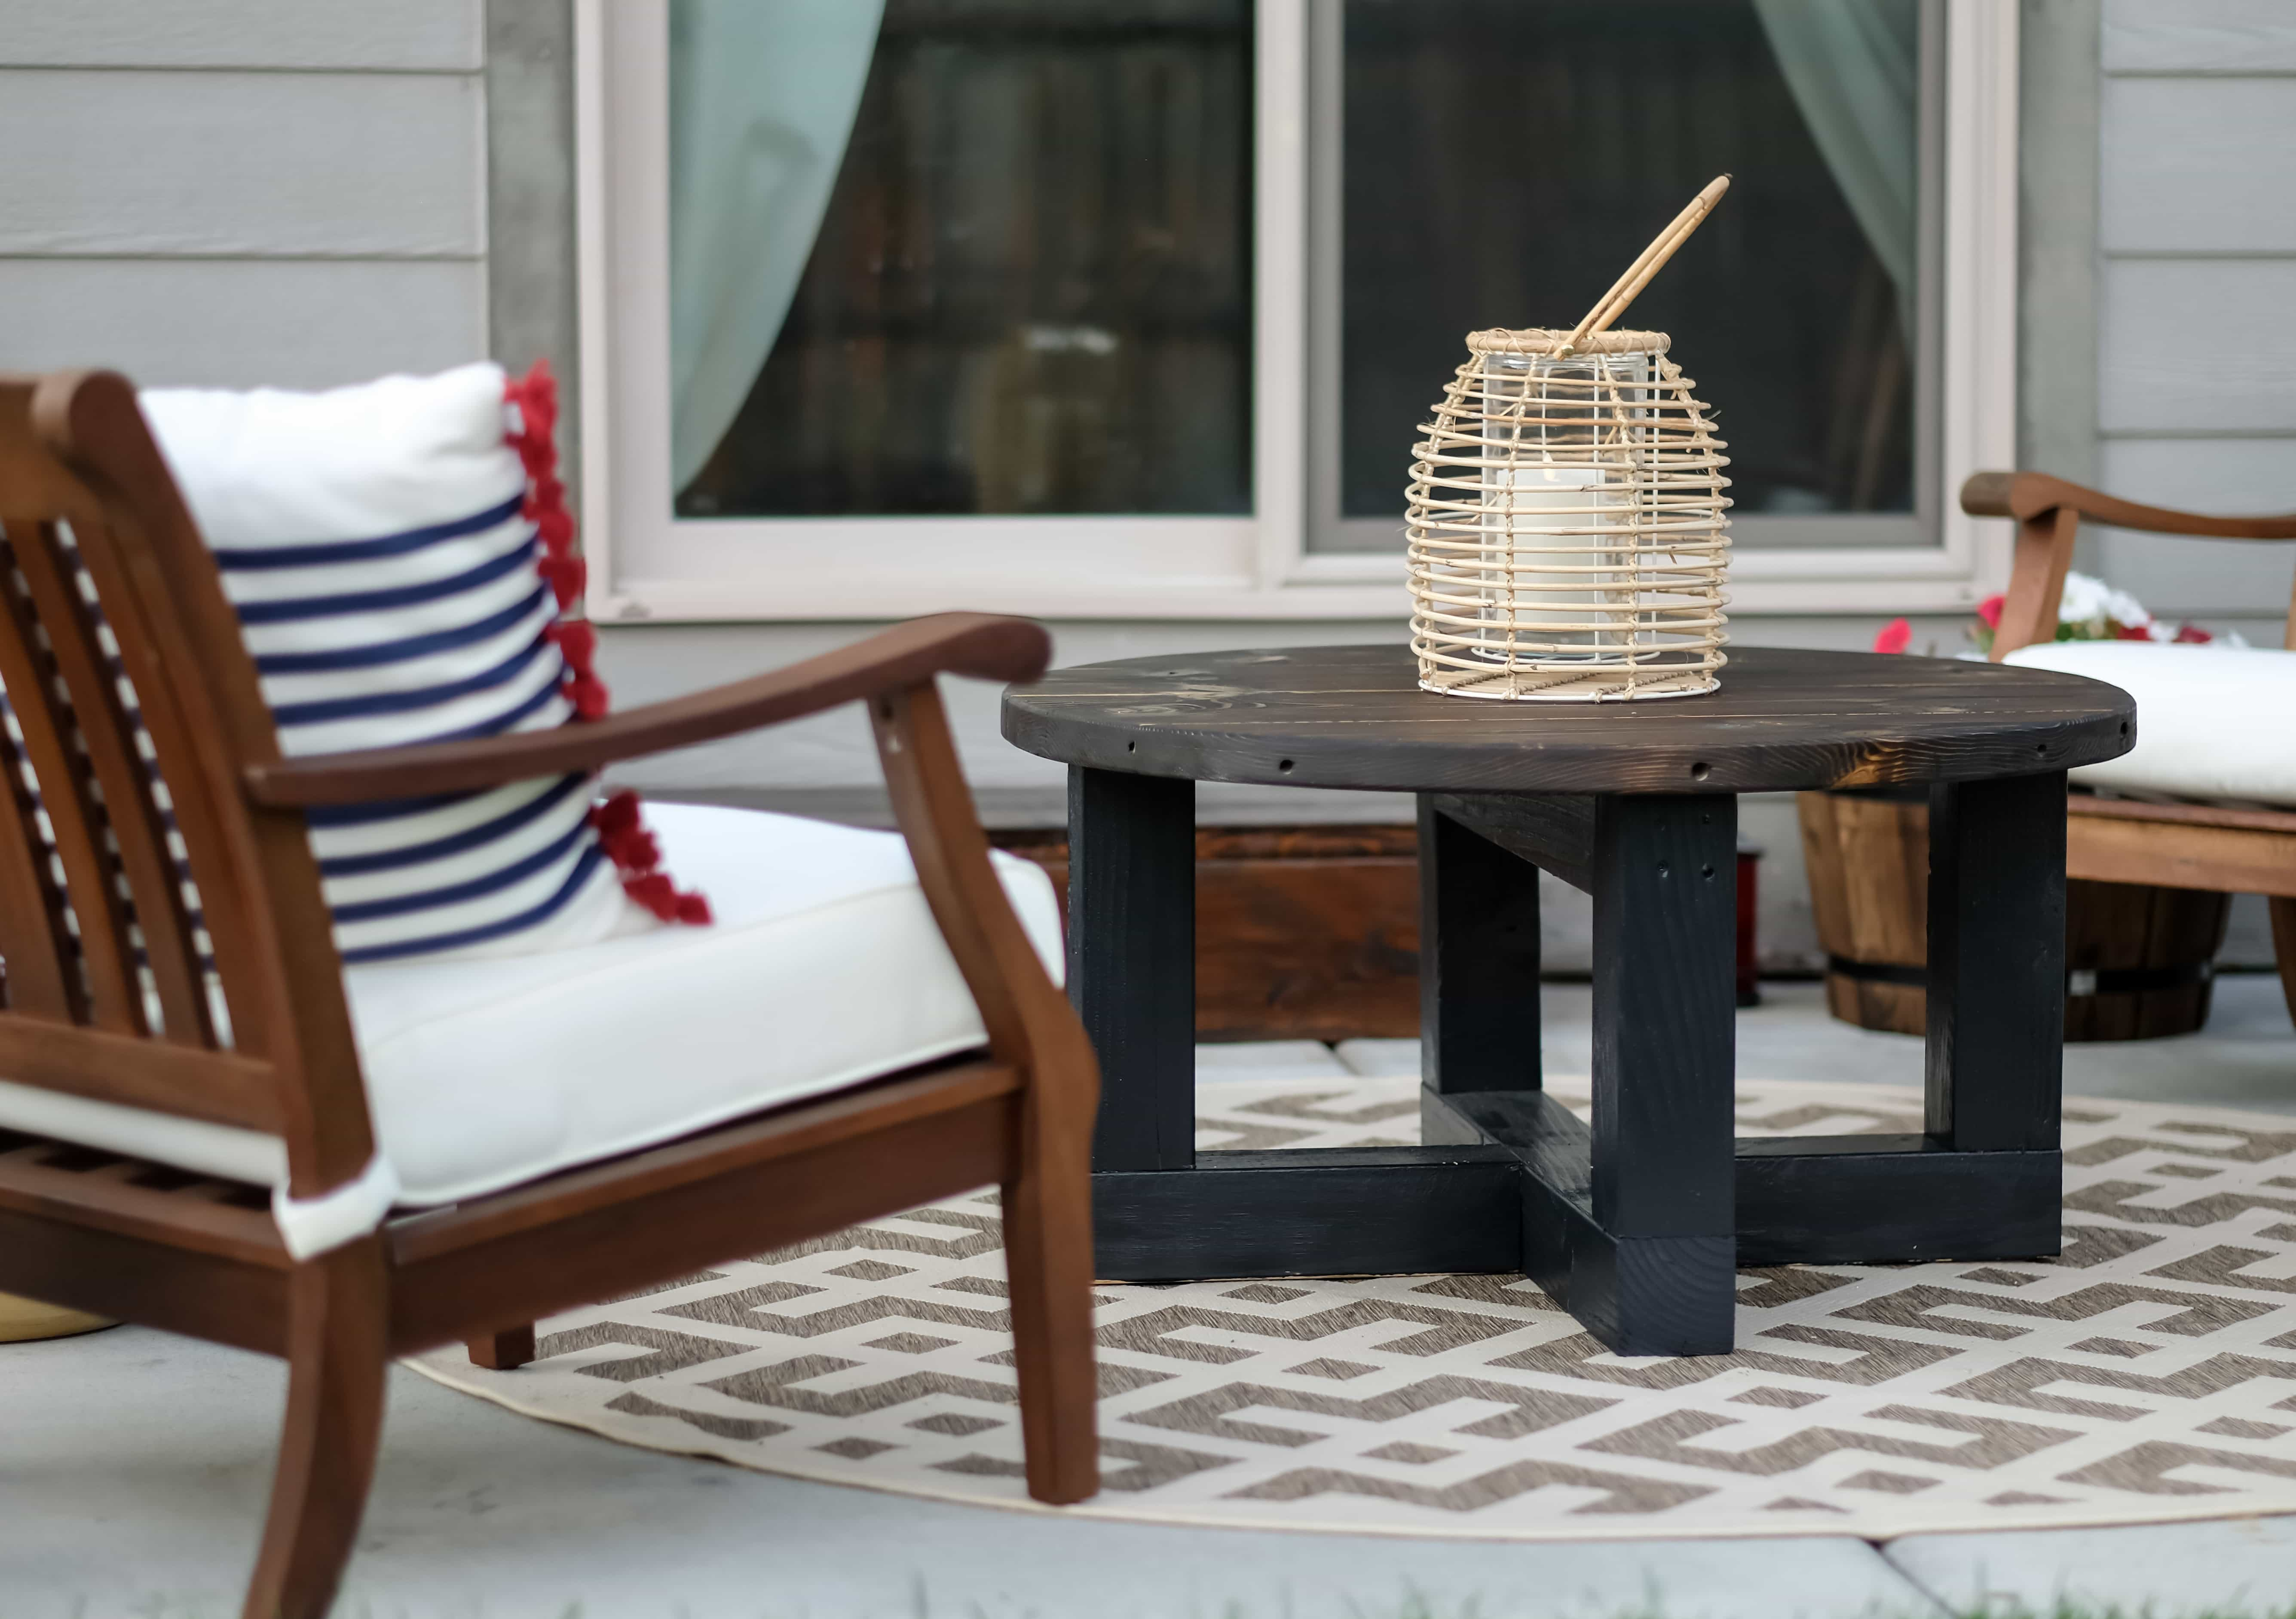 Small Patio with rustic coffee table